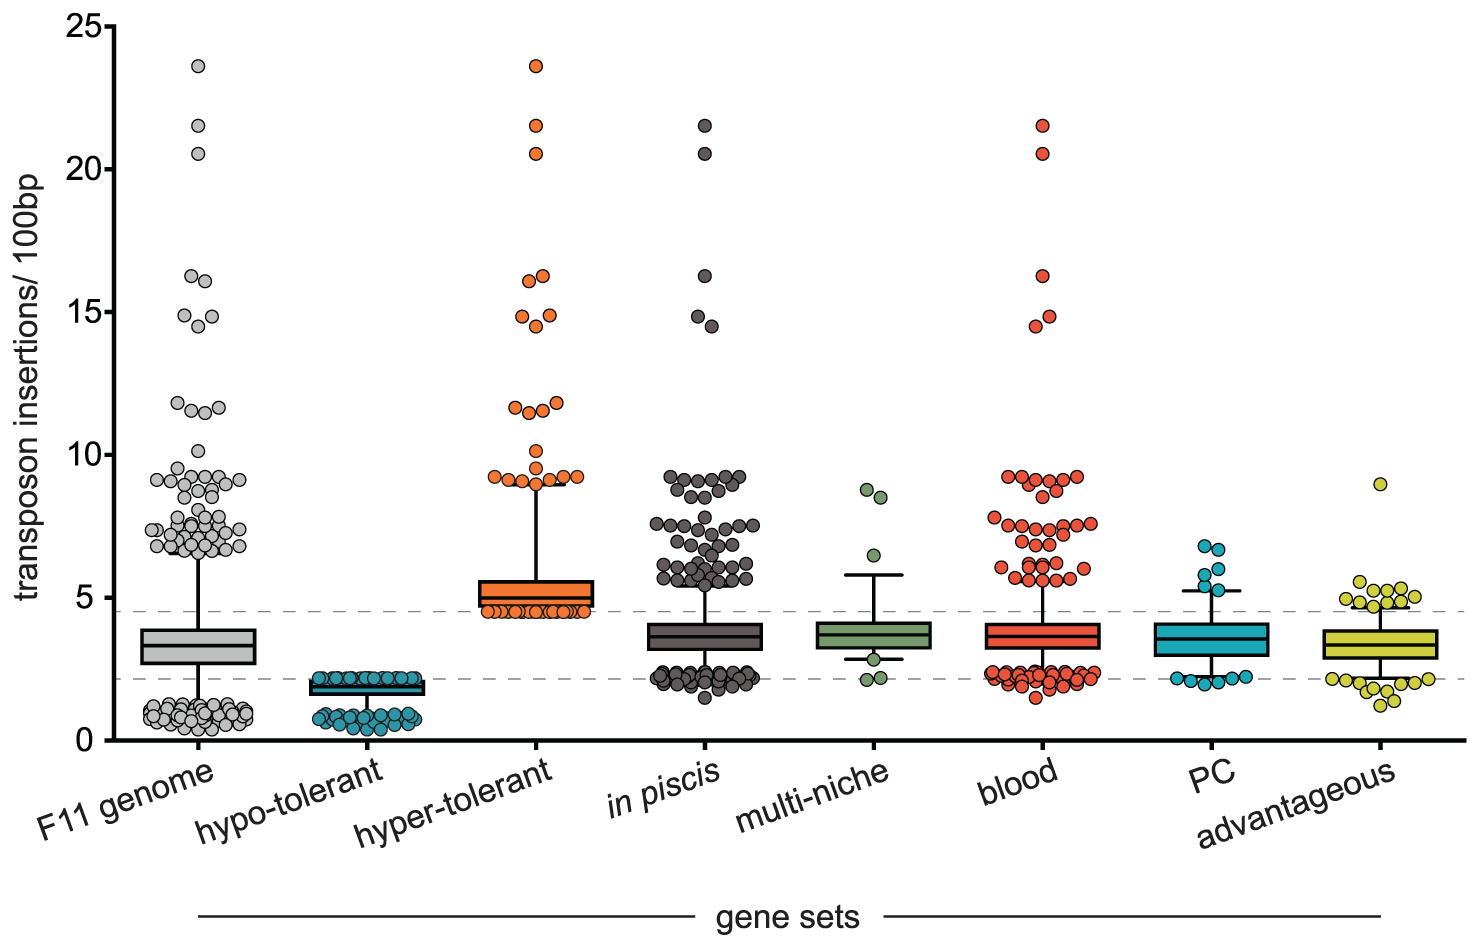 Transposon insertion rates for loci within different gene sets.